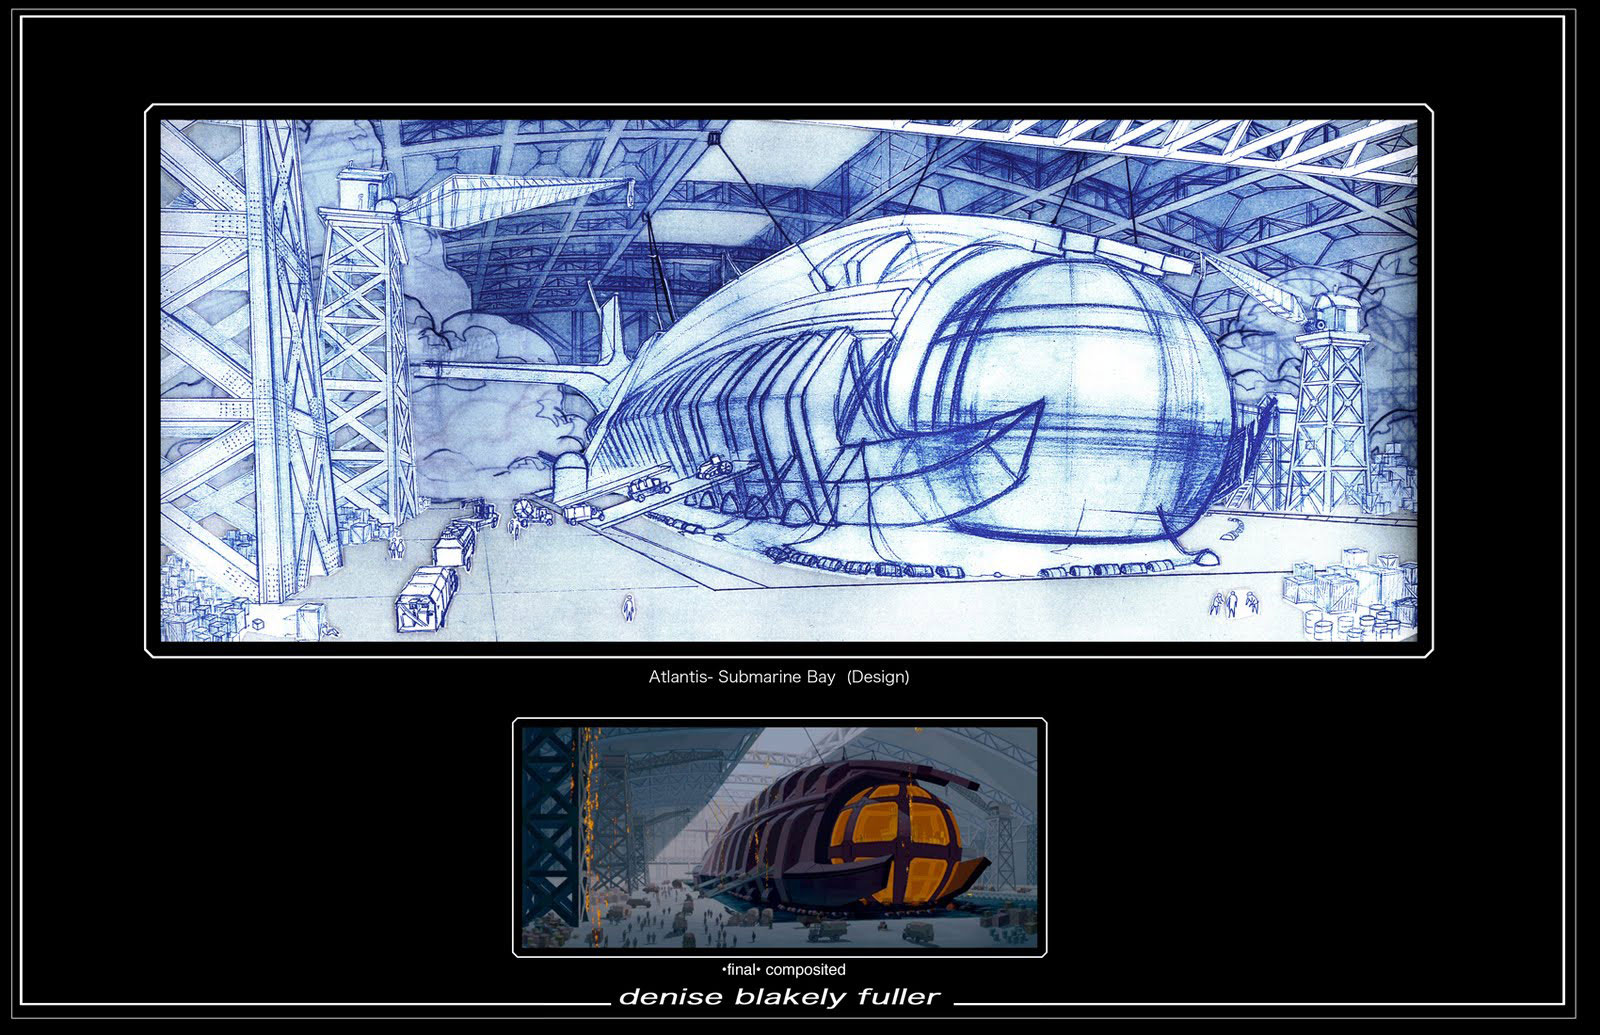 """Layout drawing by Blakely Fuller from Disney's """"Atlantis: The Lost Empire"""" (2001)."""